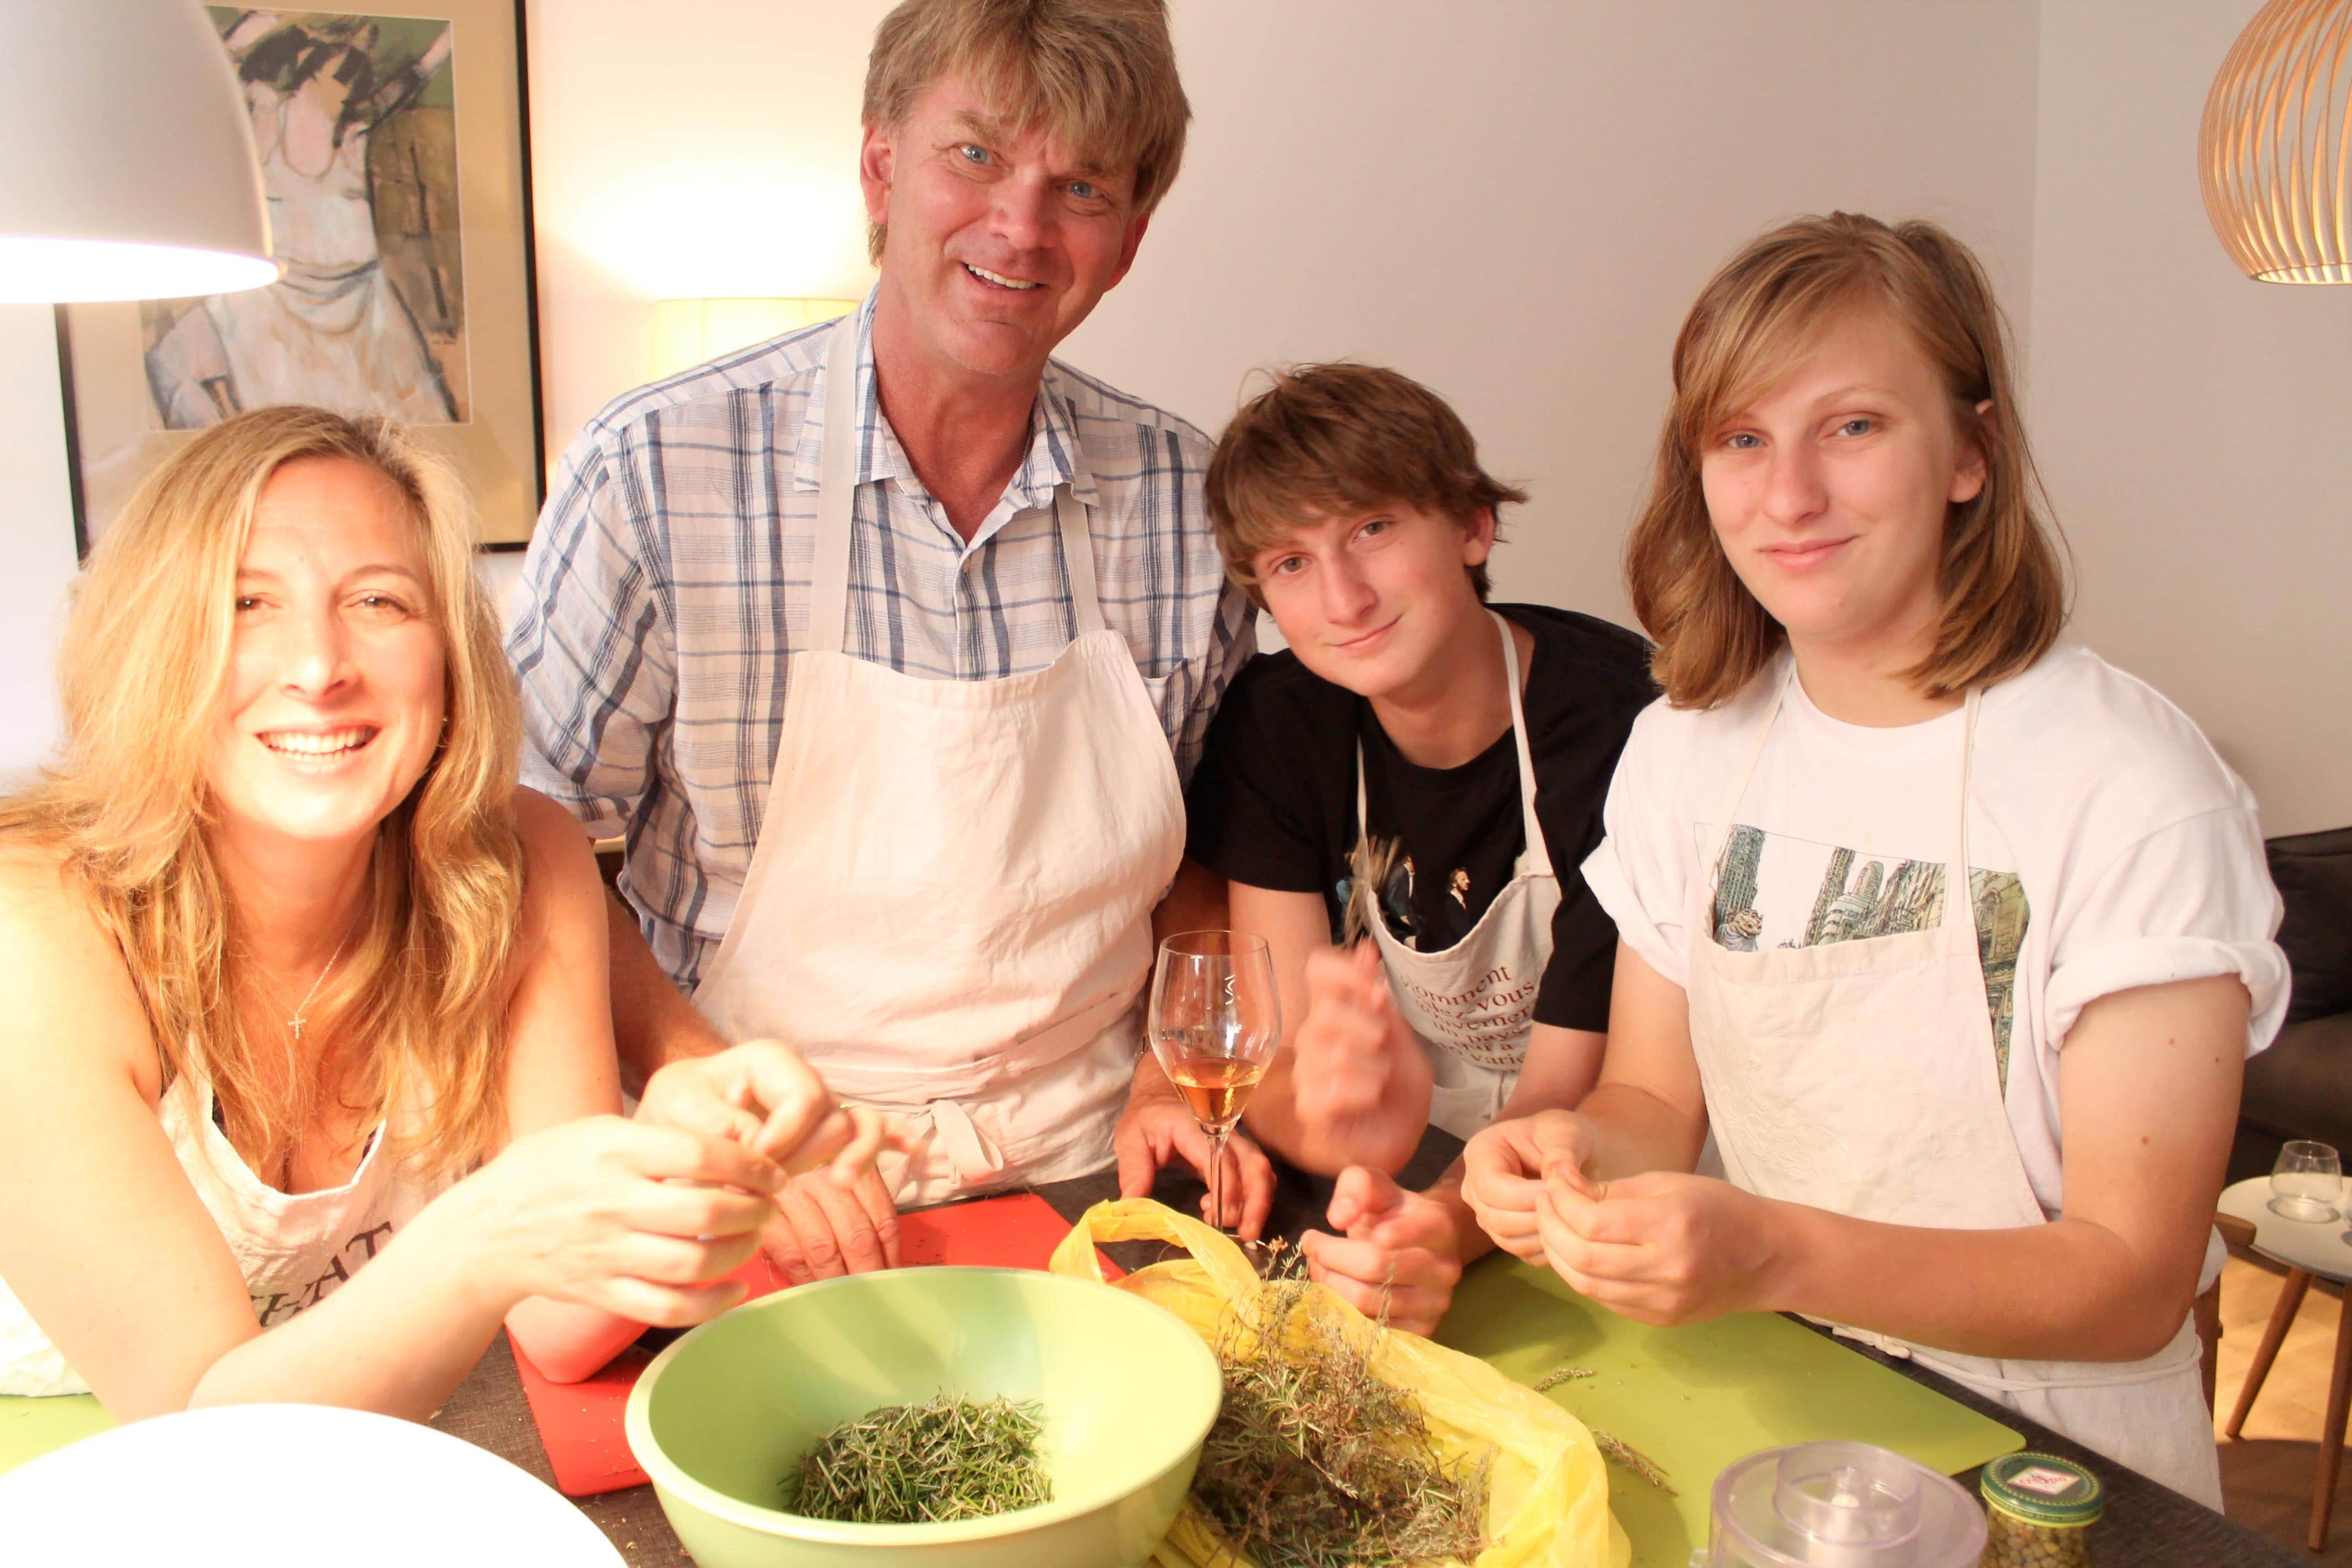 Wine and cooking class, parents and children